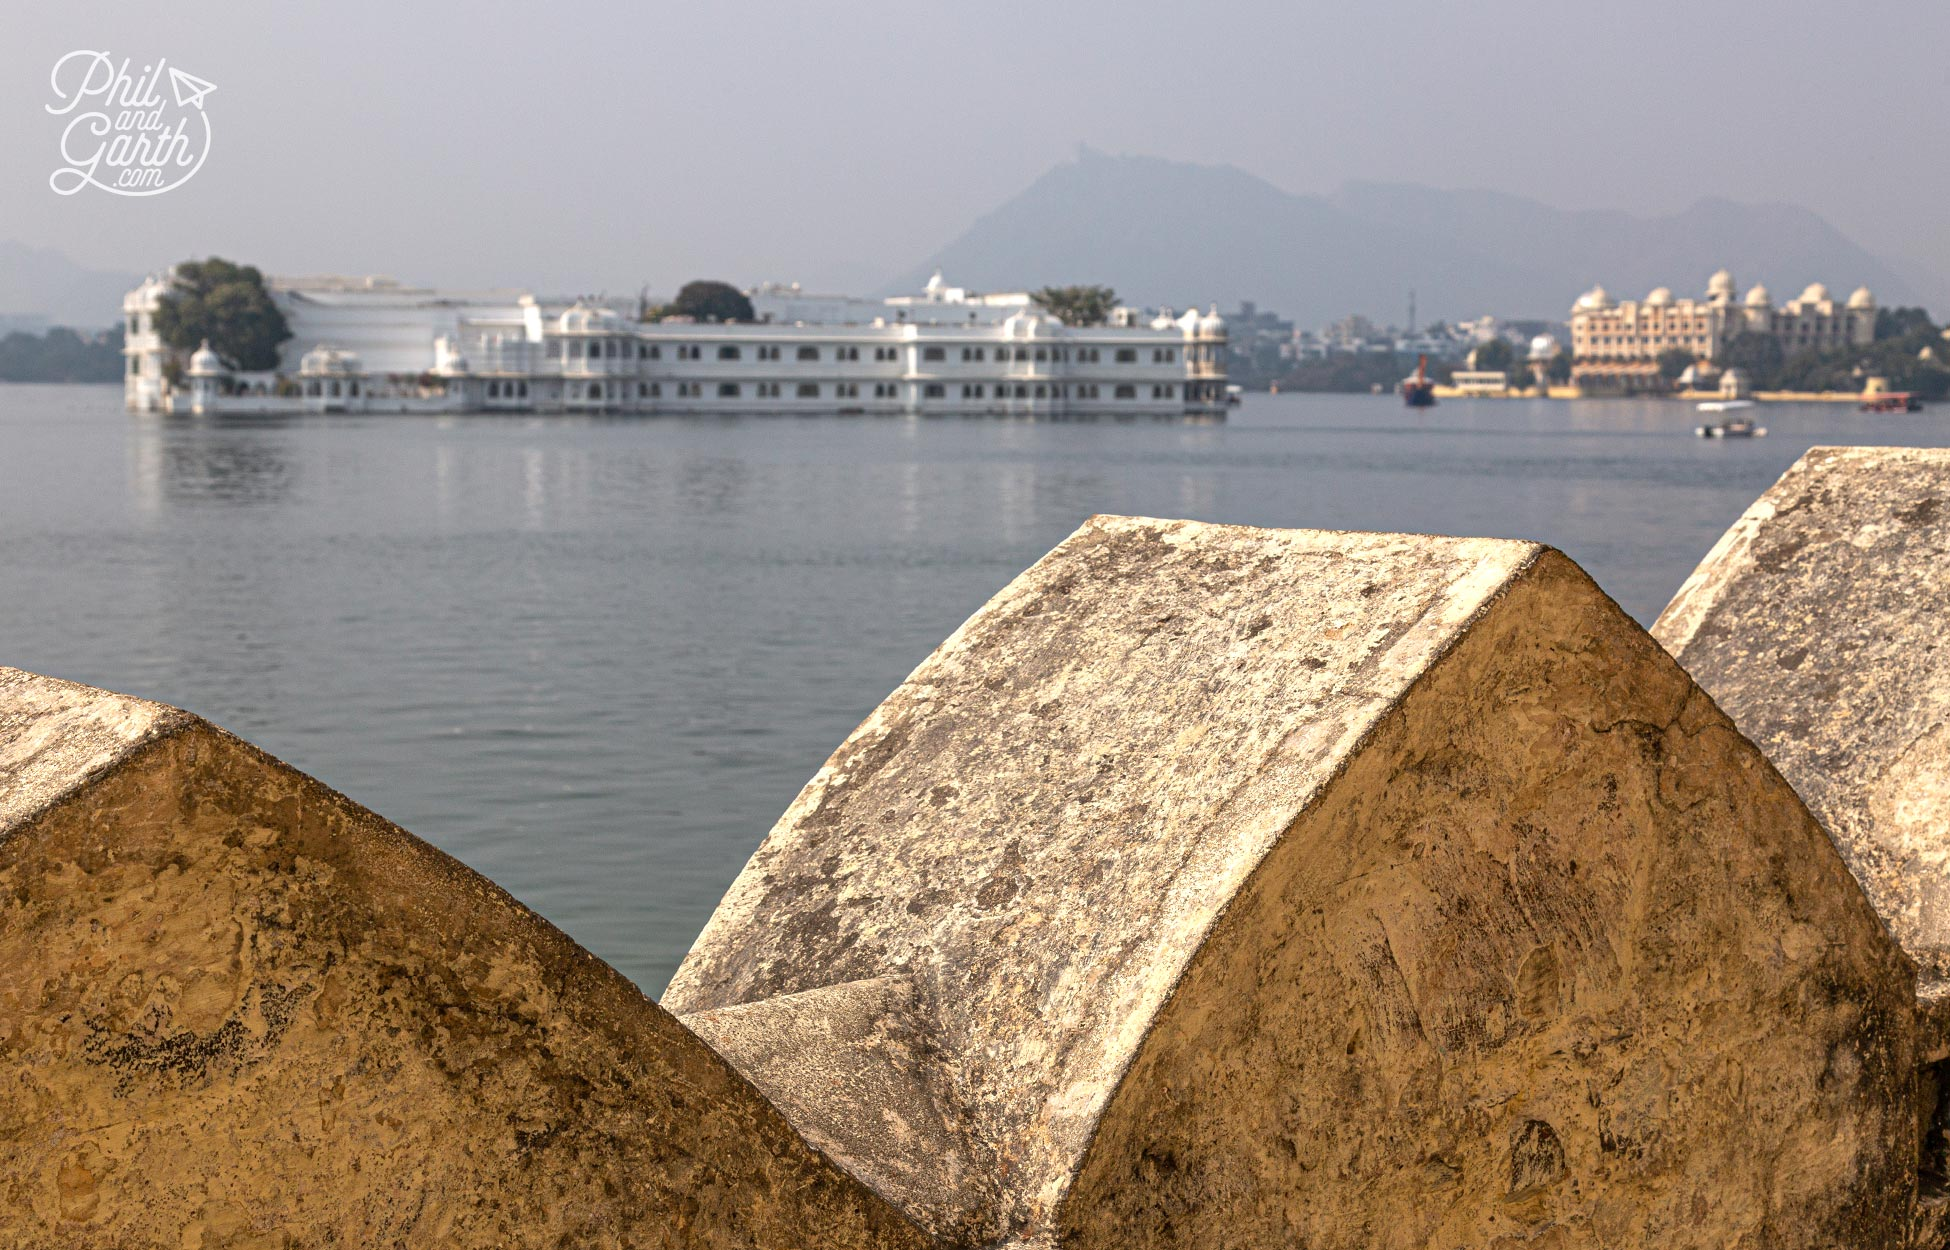 Udaipur is really popular location for Indian weddings